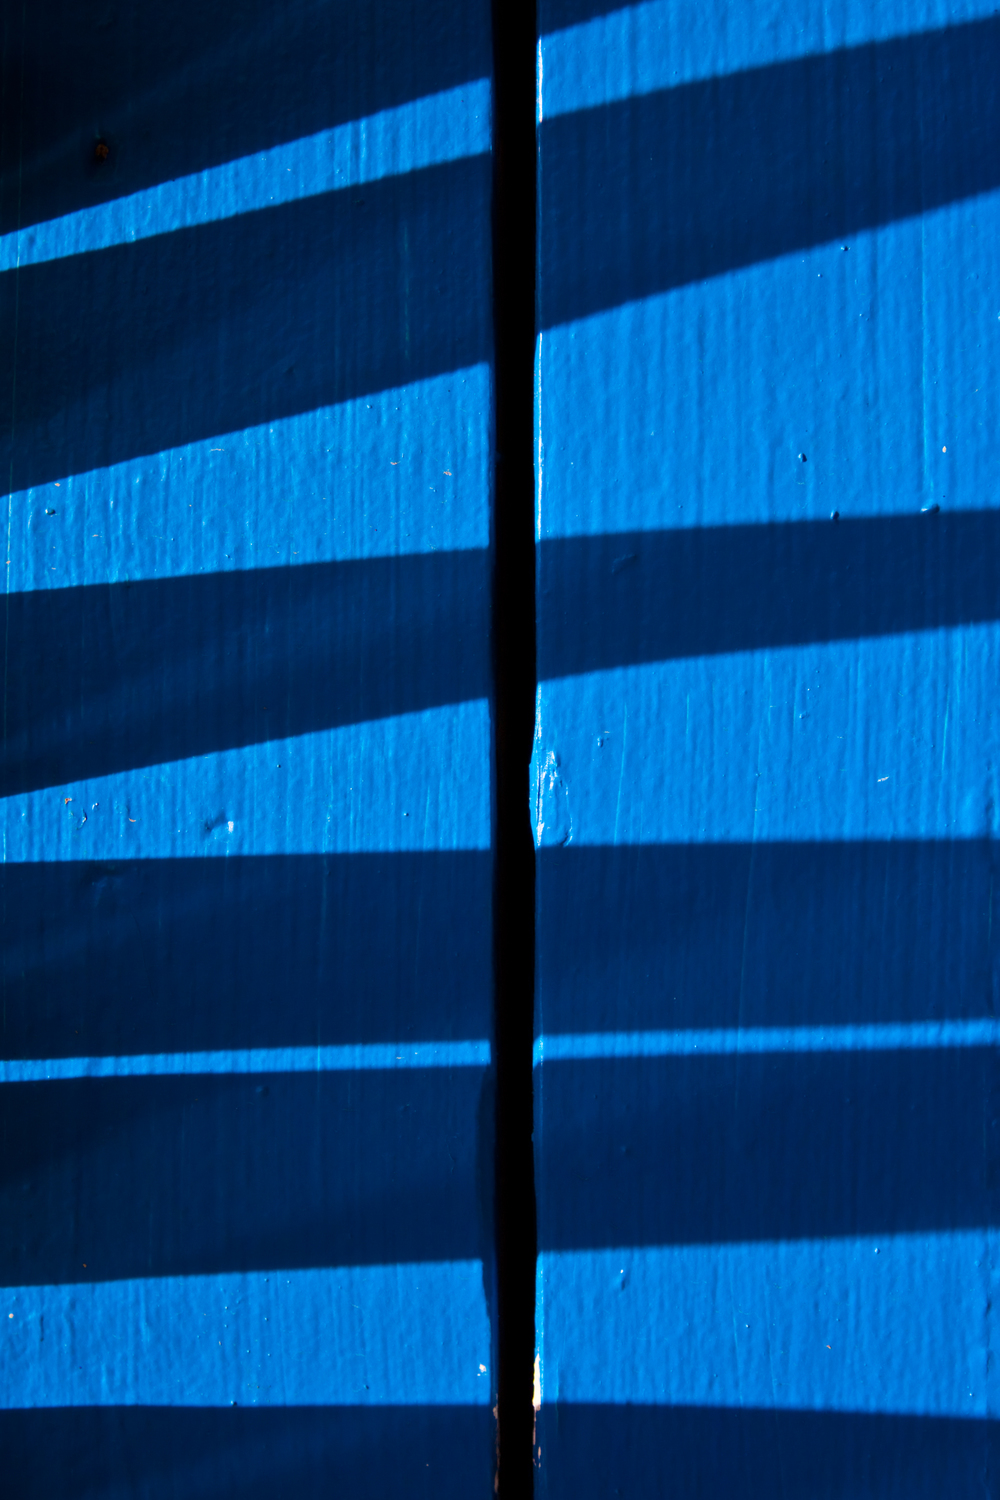 Shadow detail of a palm branch against a blue post.